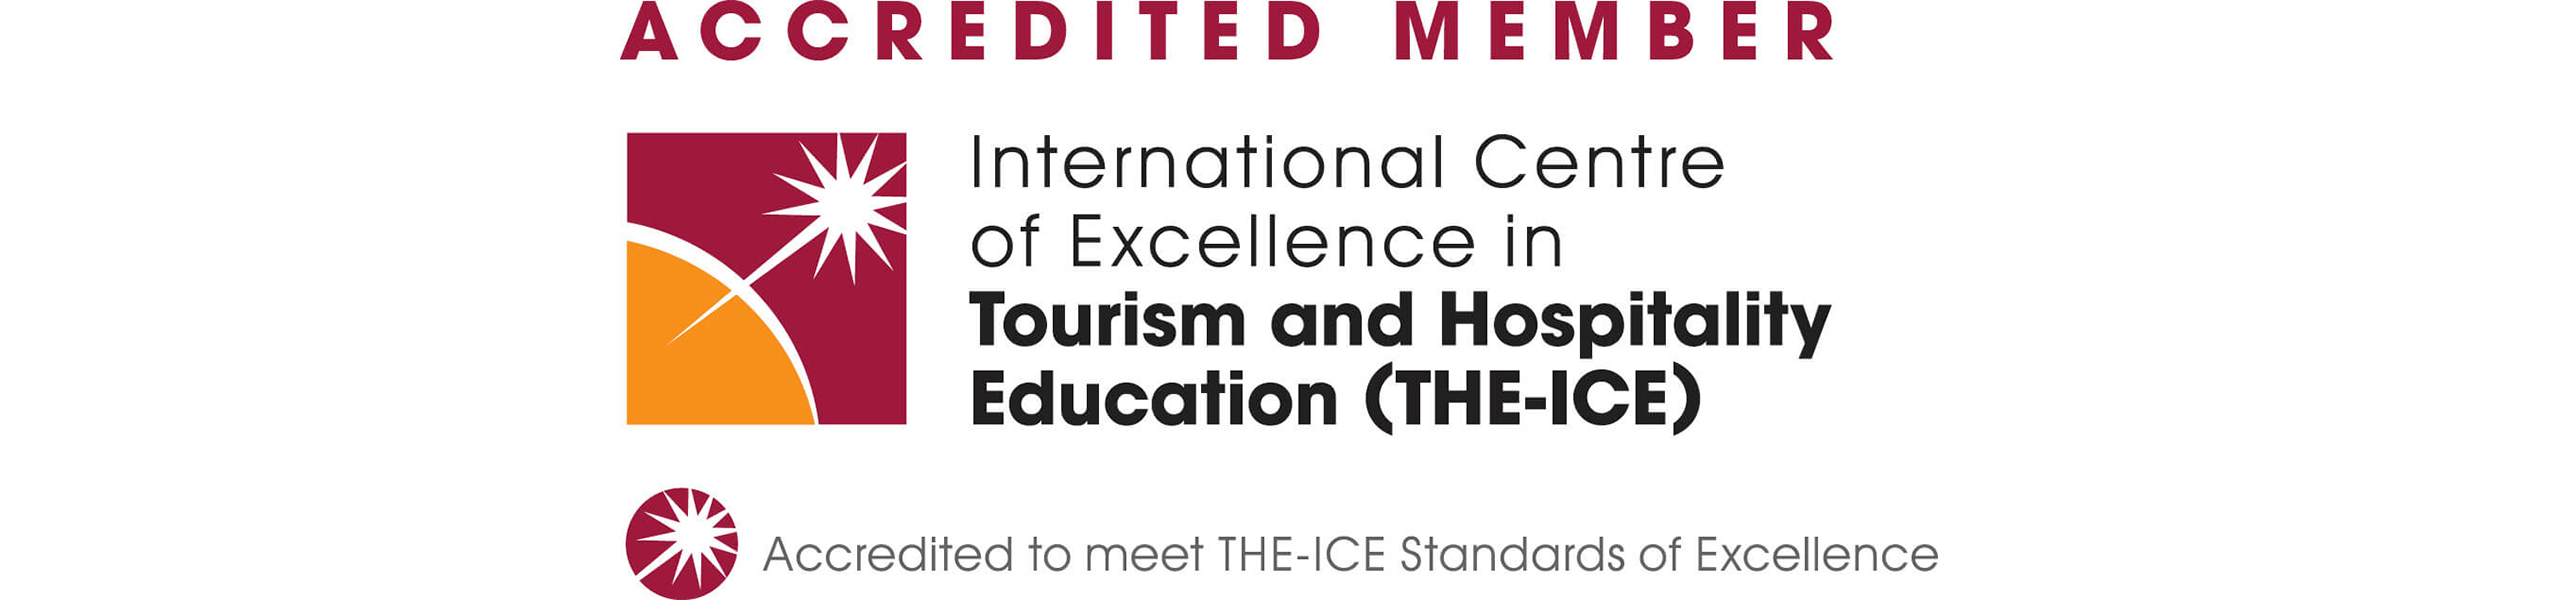 International Centre of Excellence in Tourism and Hospitality Logo